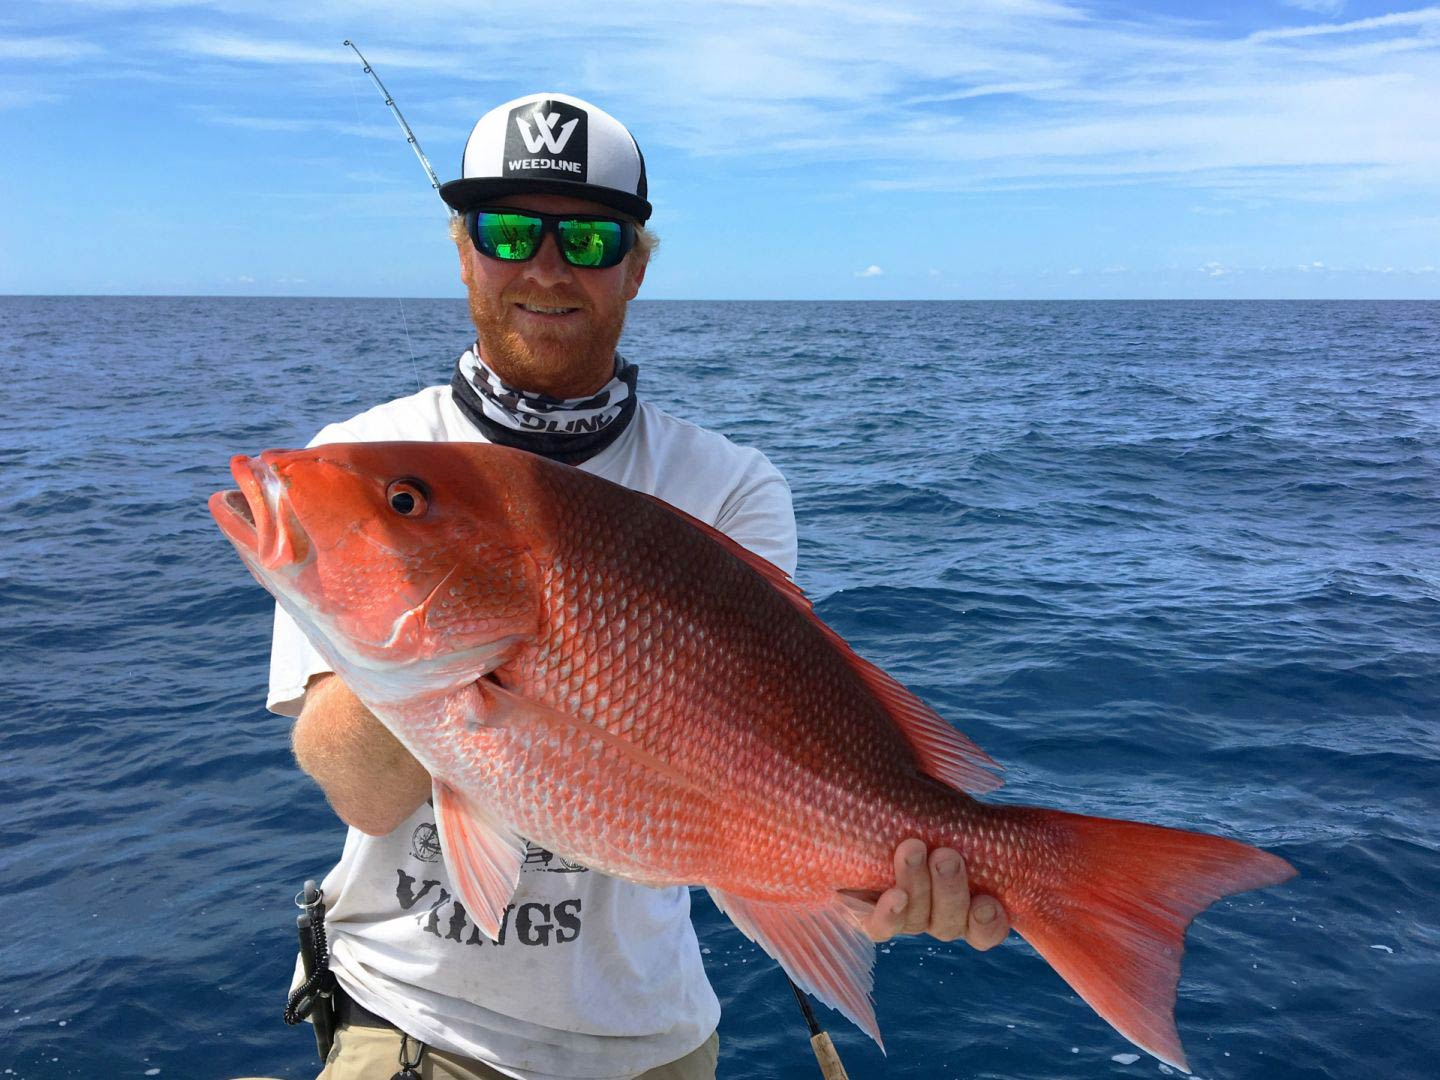 A man holding a Red Snapper on a boat in Florida